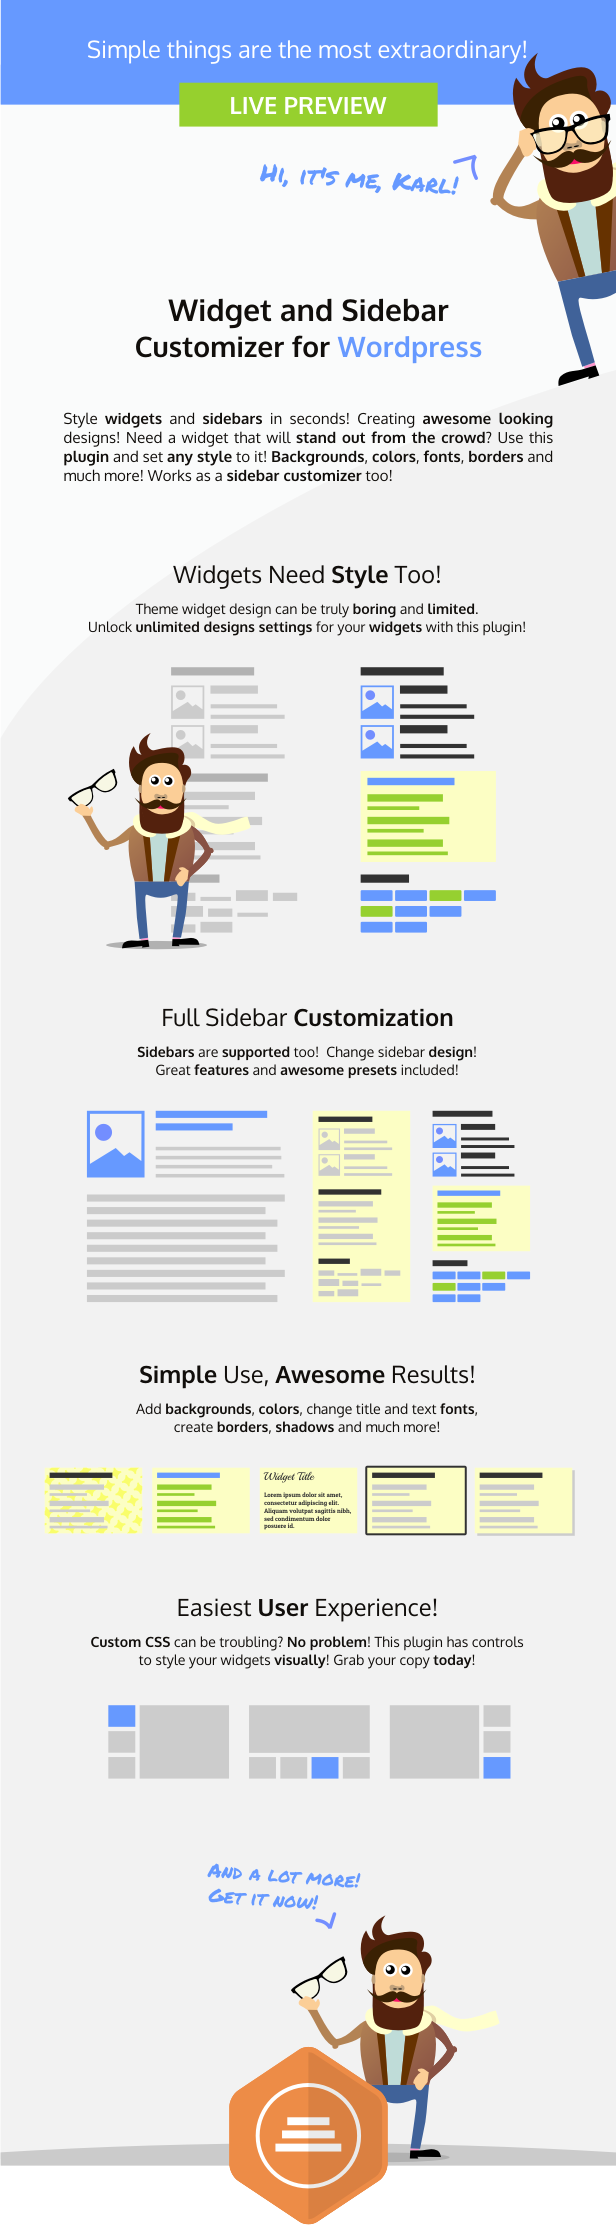 Widget and Sidebar Customizer for WordPress 2